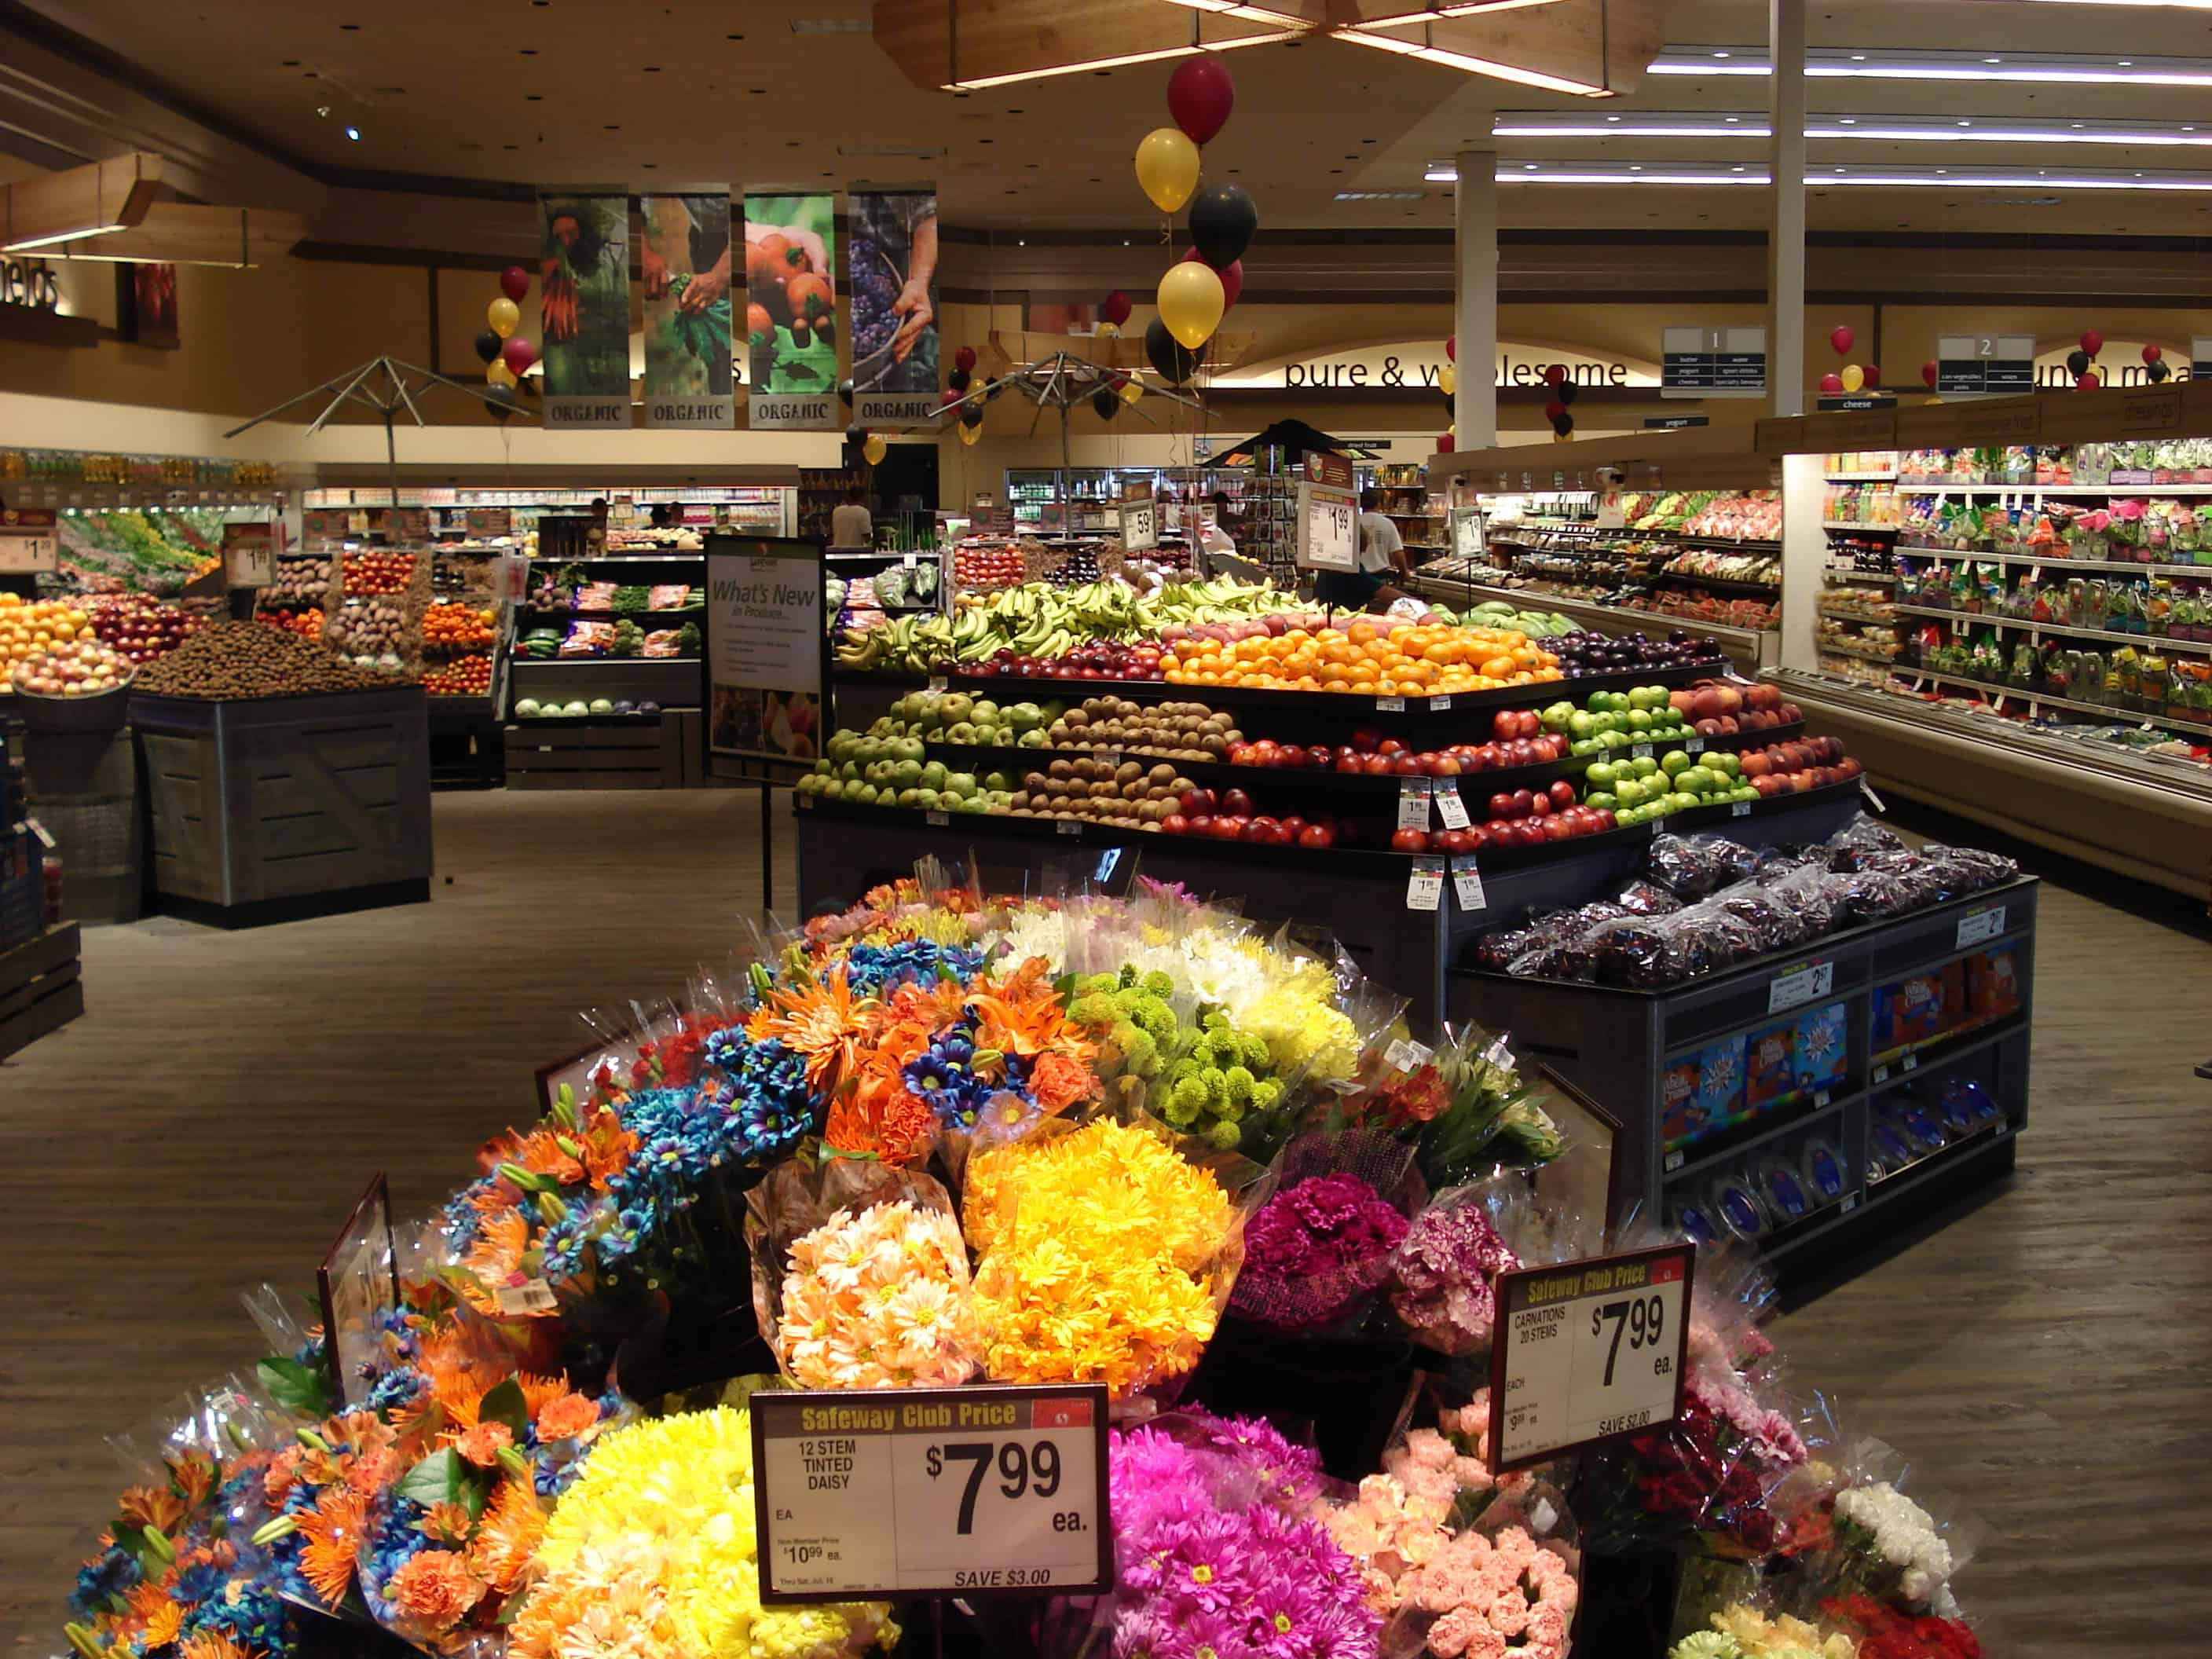 How To Get The Best Deals At Safeway Mile High On The Cheap